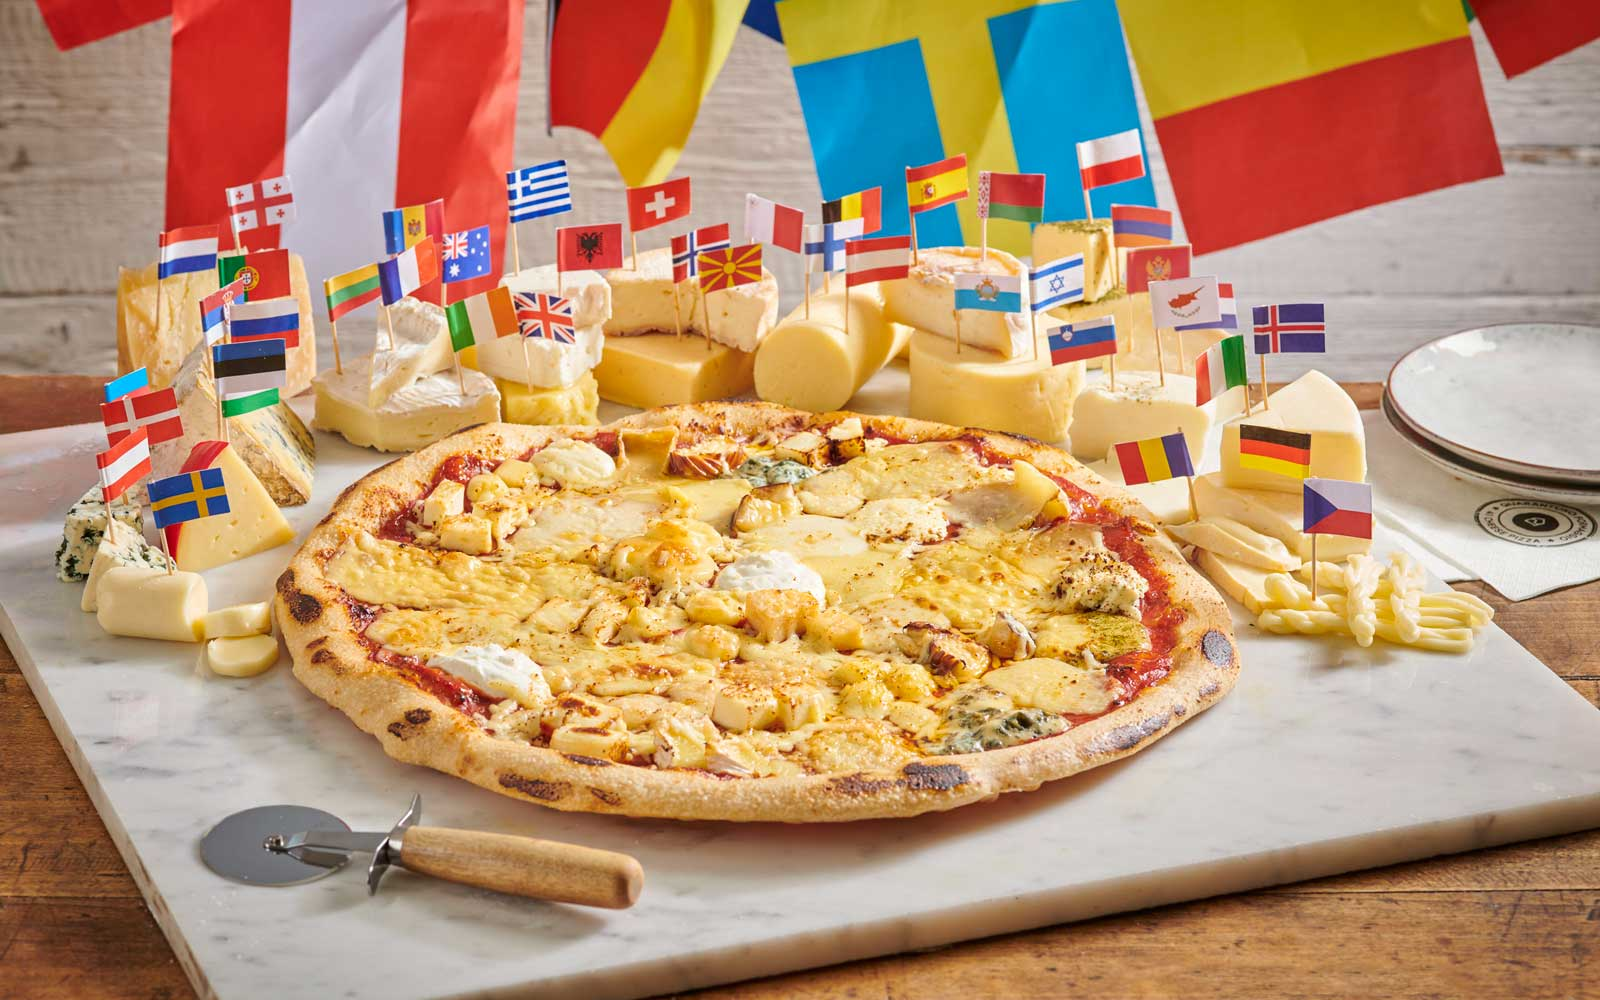 This Pizza Has 41 Types of Cheese From 41 Countries Around the World